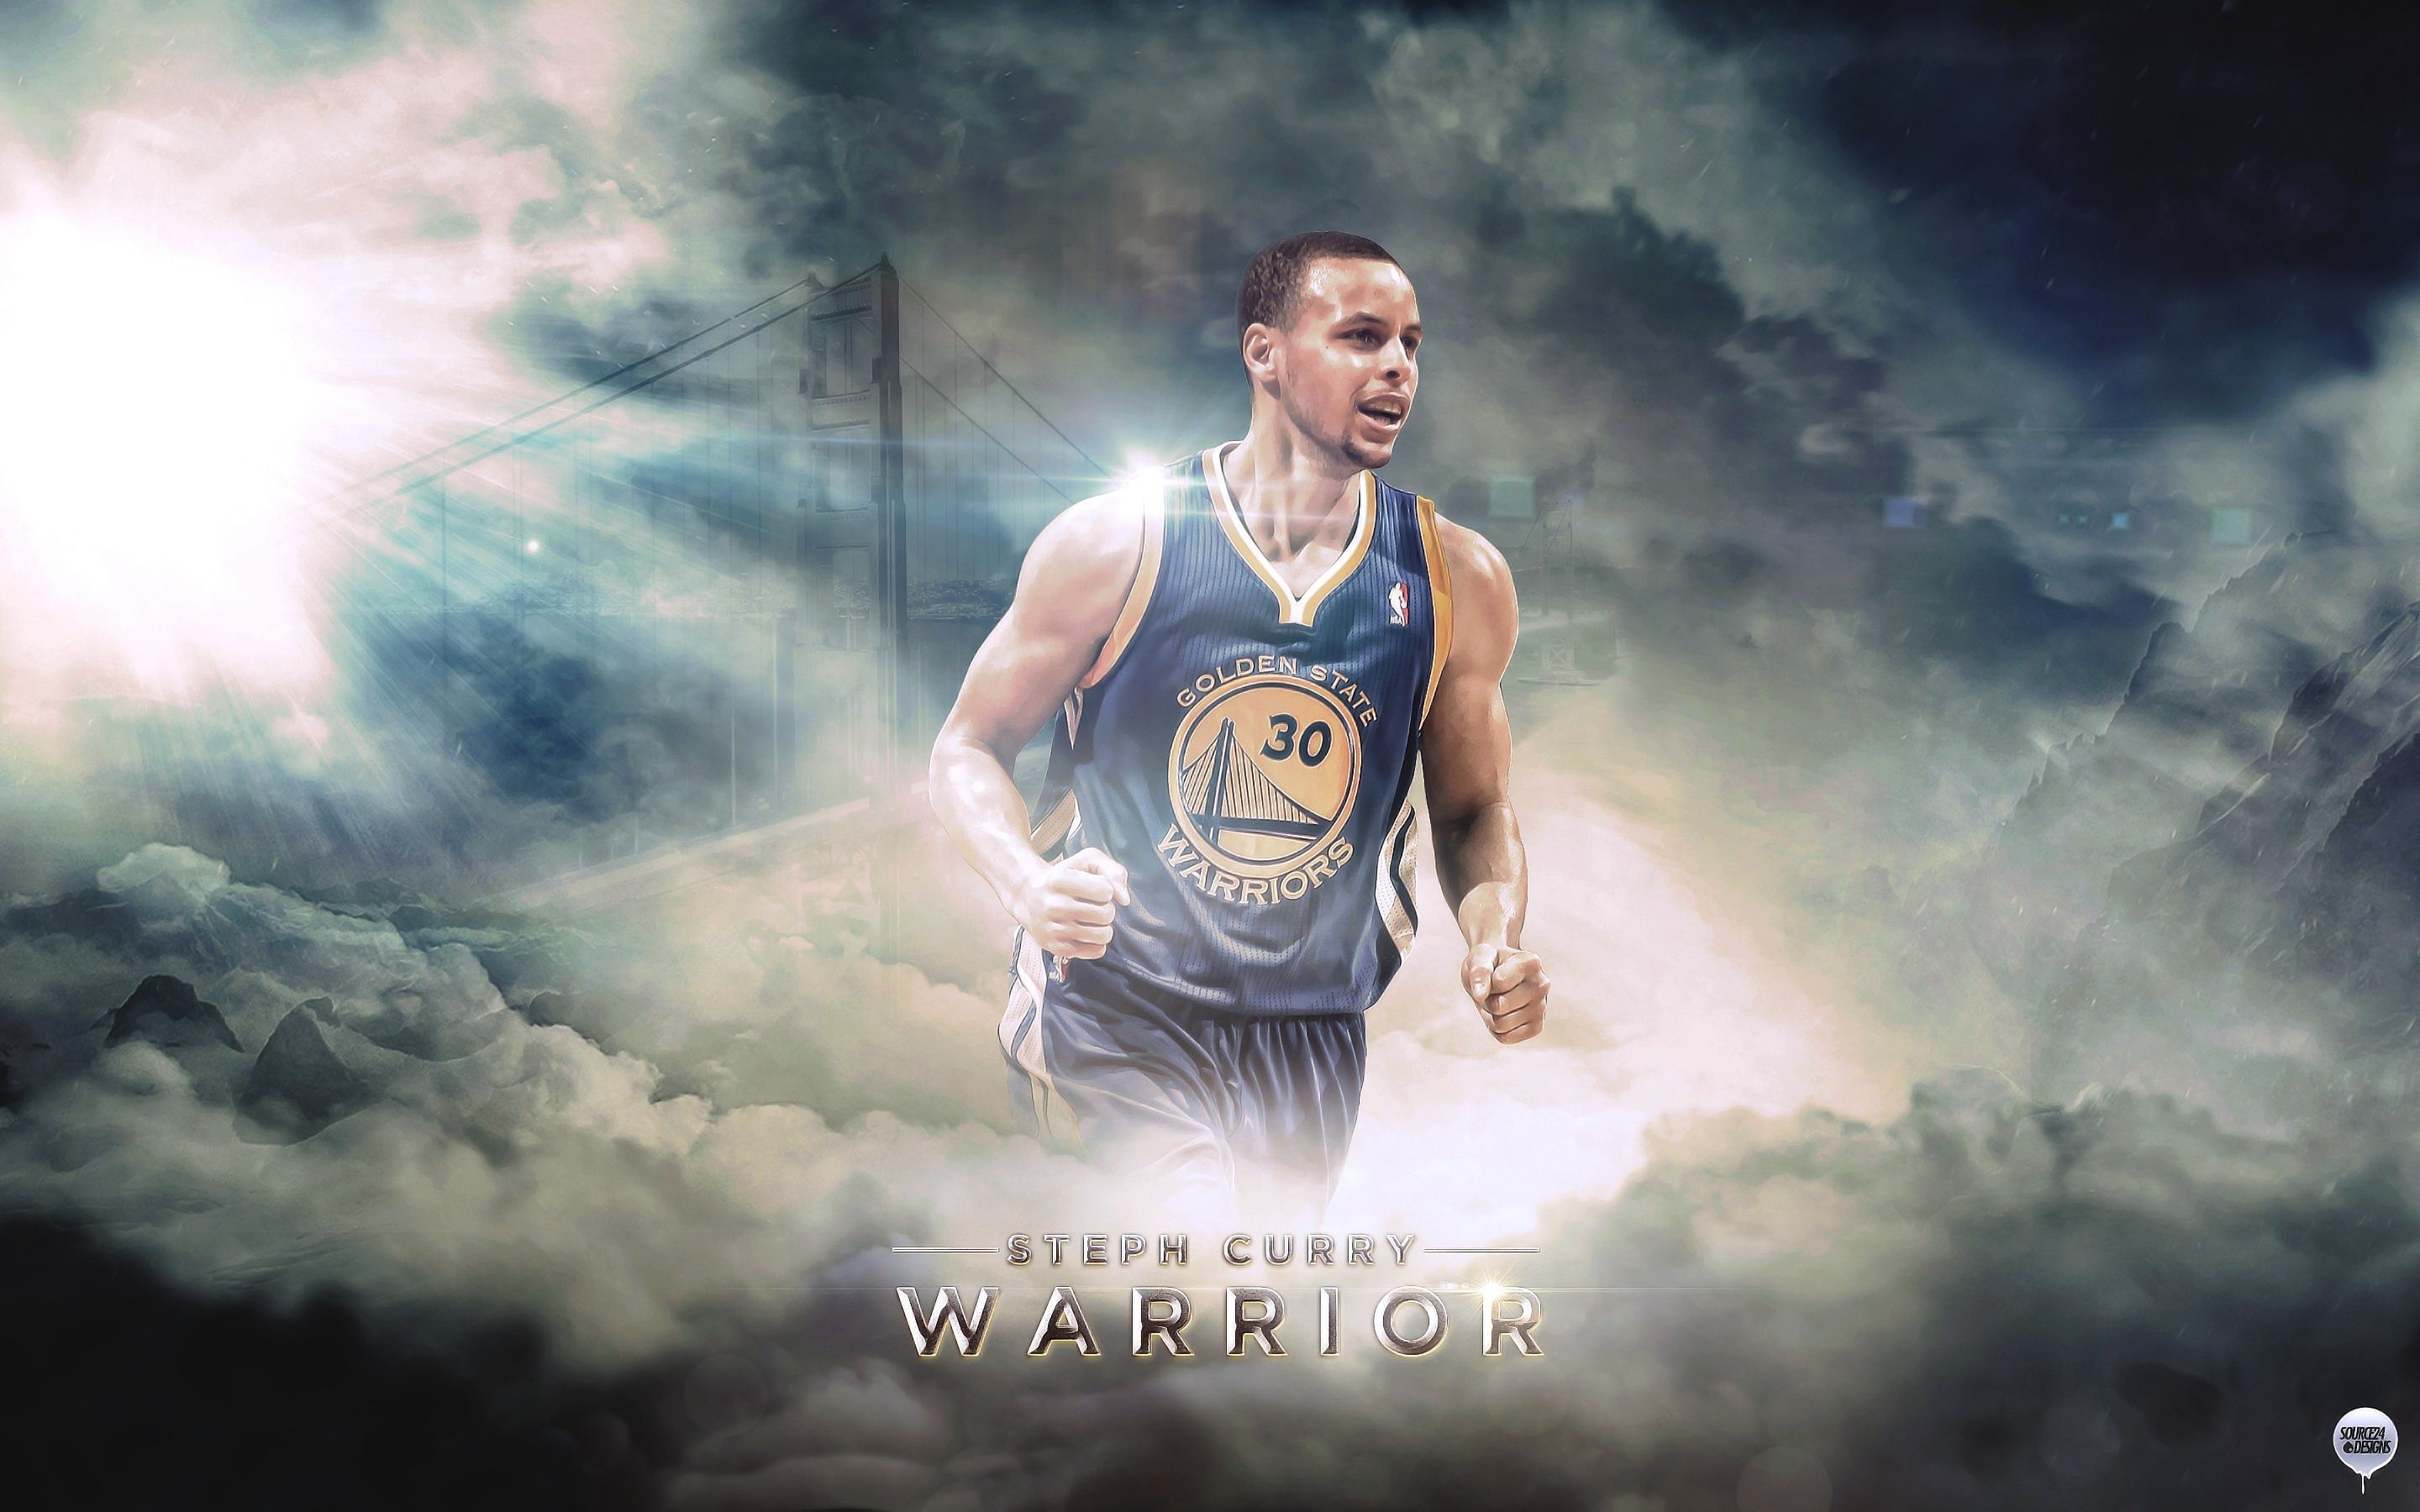 stephen curry basketball player wallpaper widescreen | stephen curry